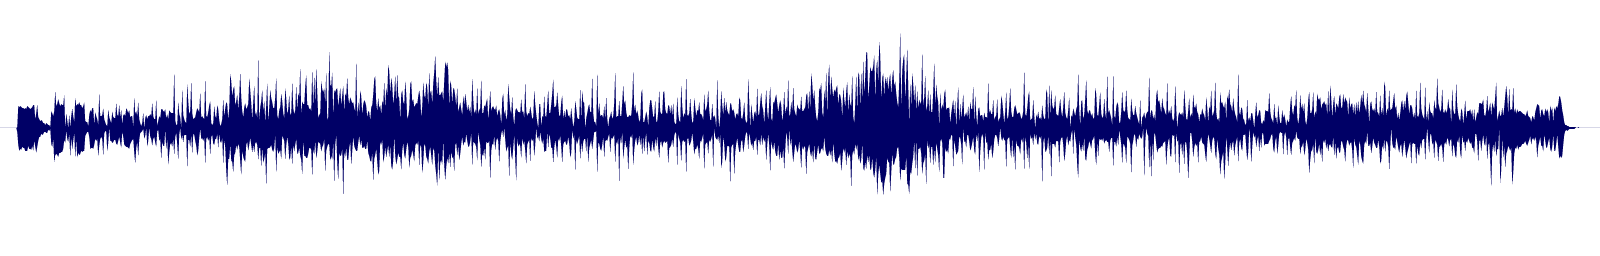 waveform of track #98926